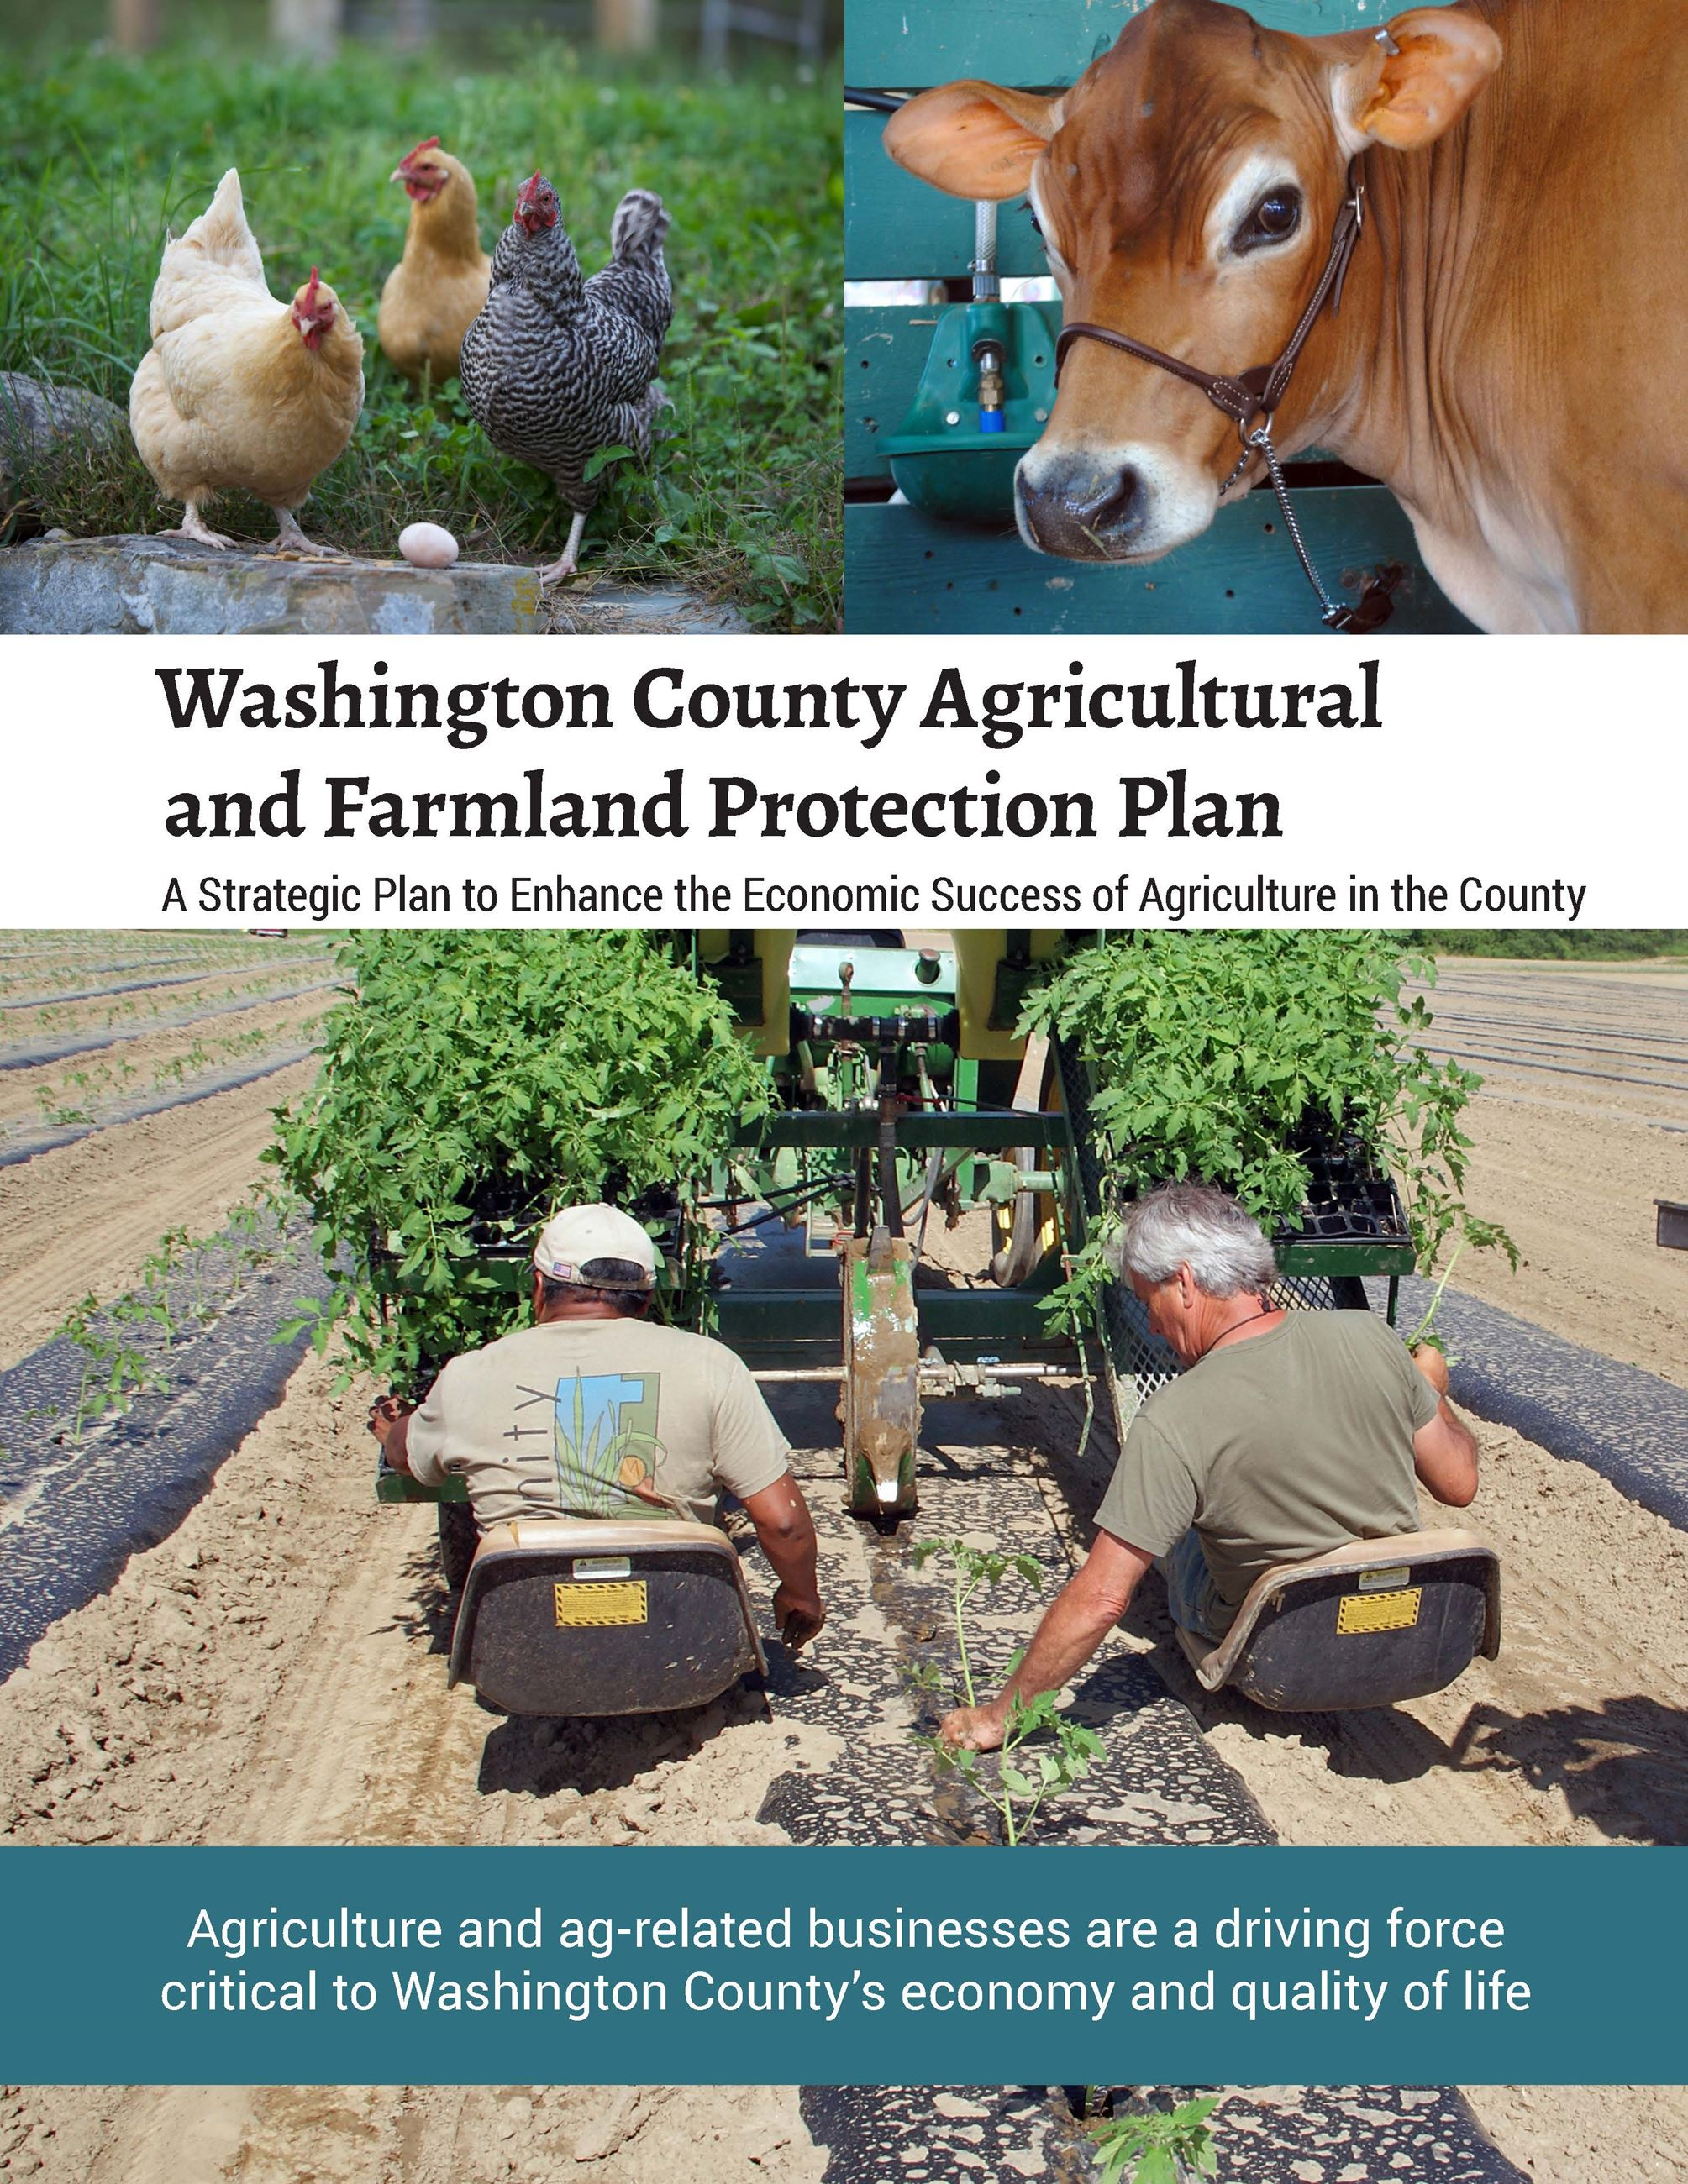 Washington County Agricultural and Farmland Protection Plan